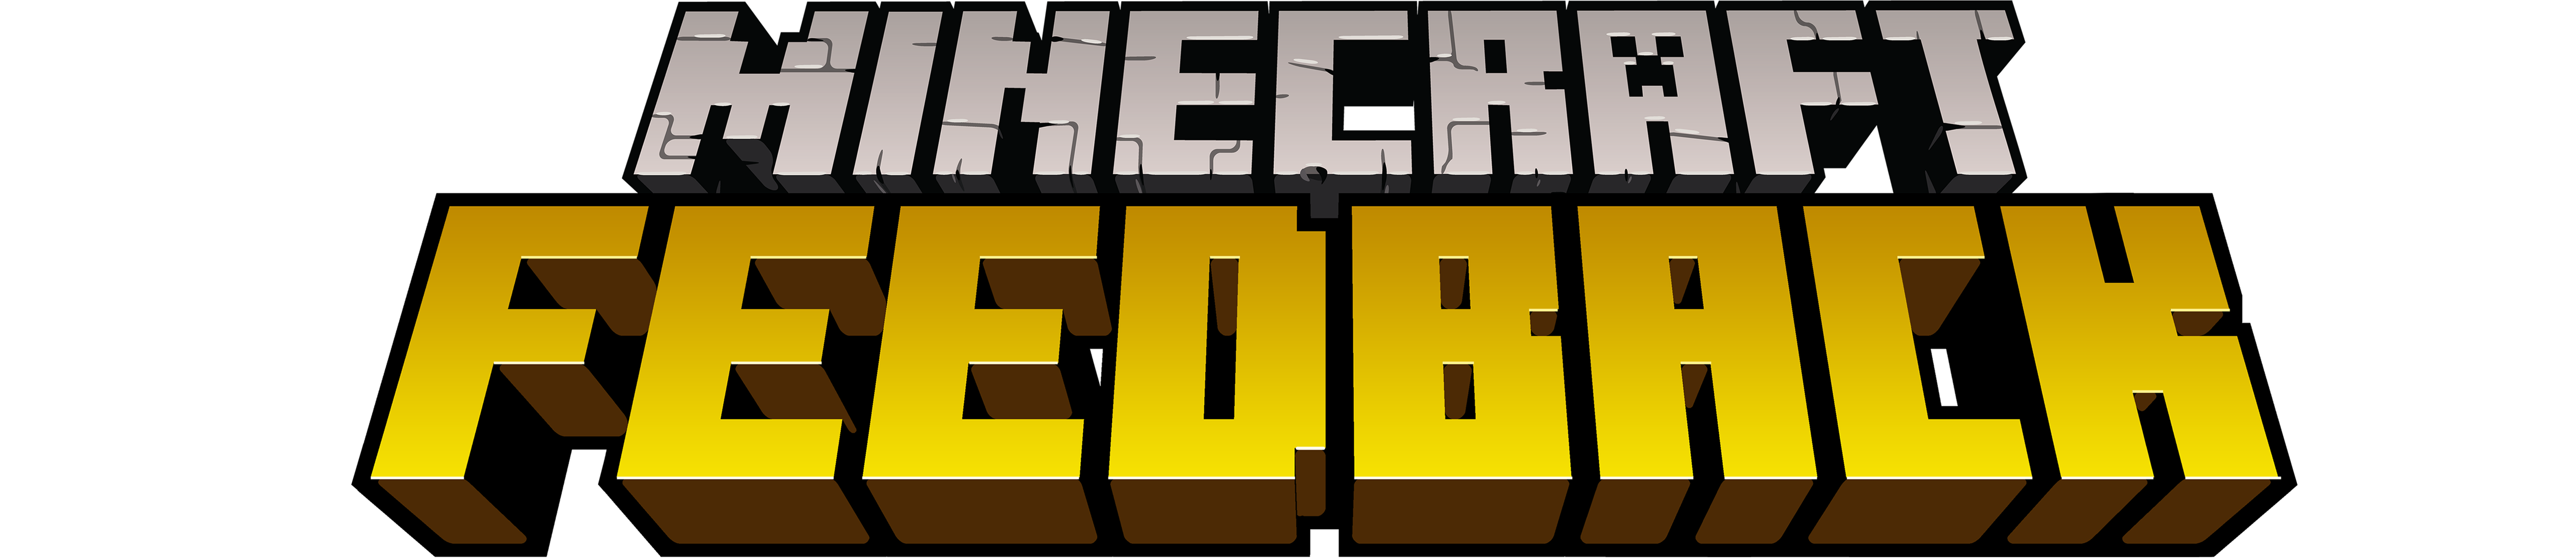 Minecraft Feedback Logo